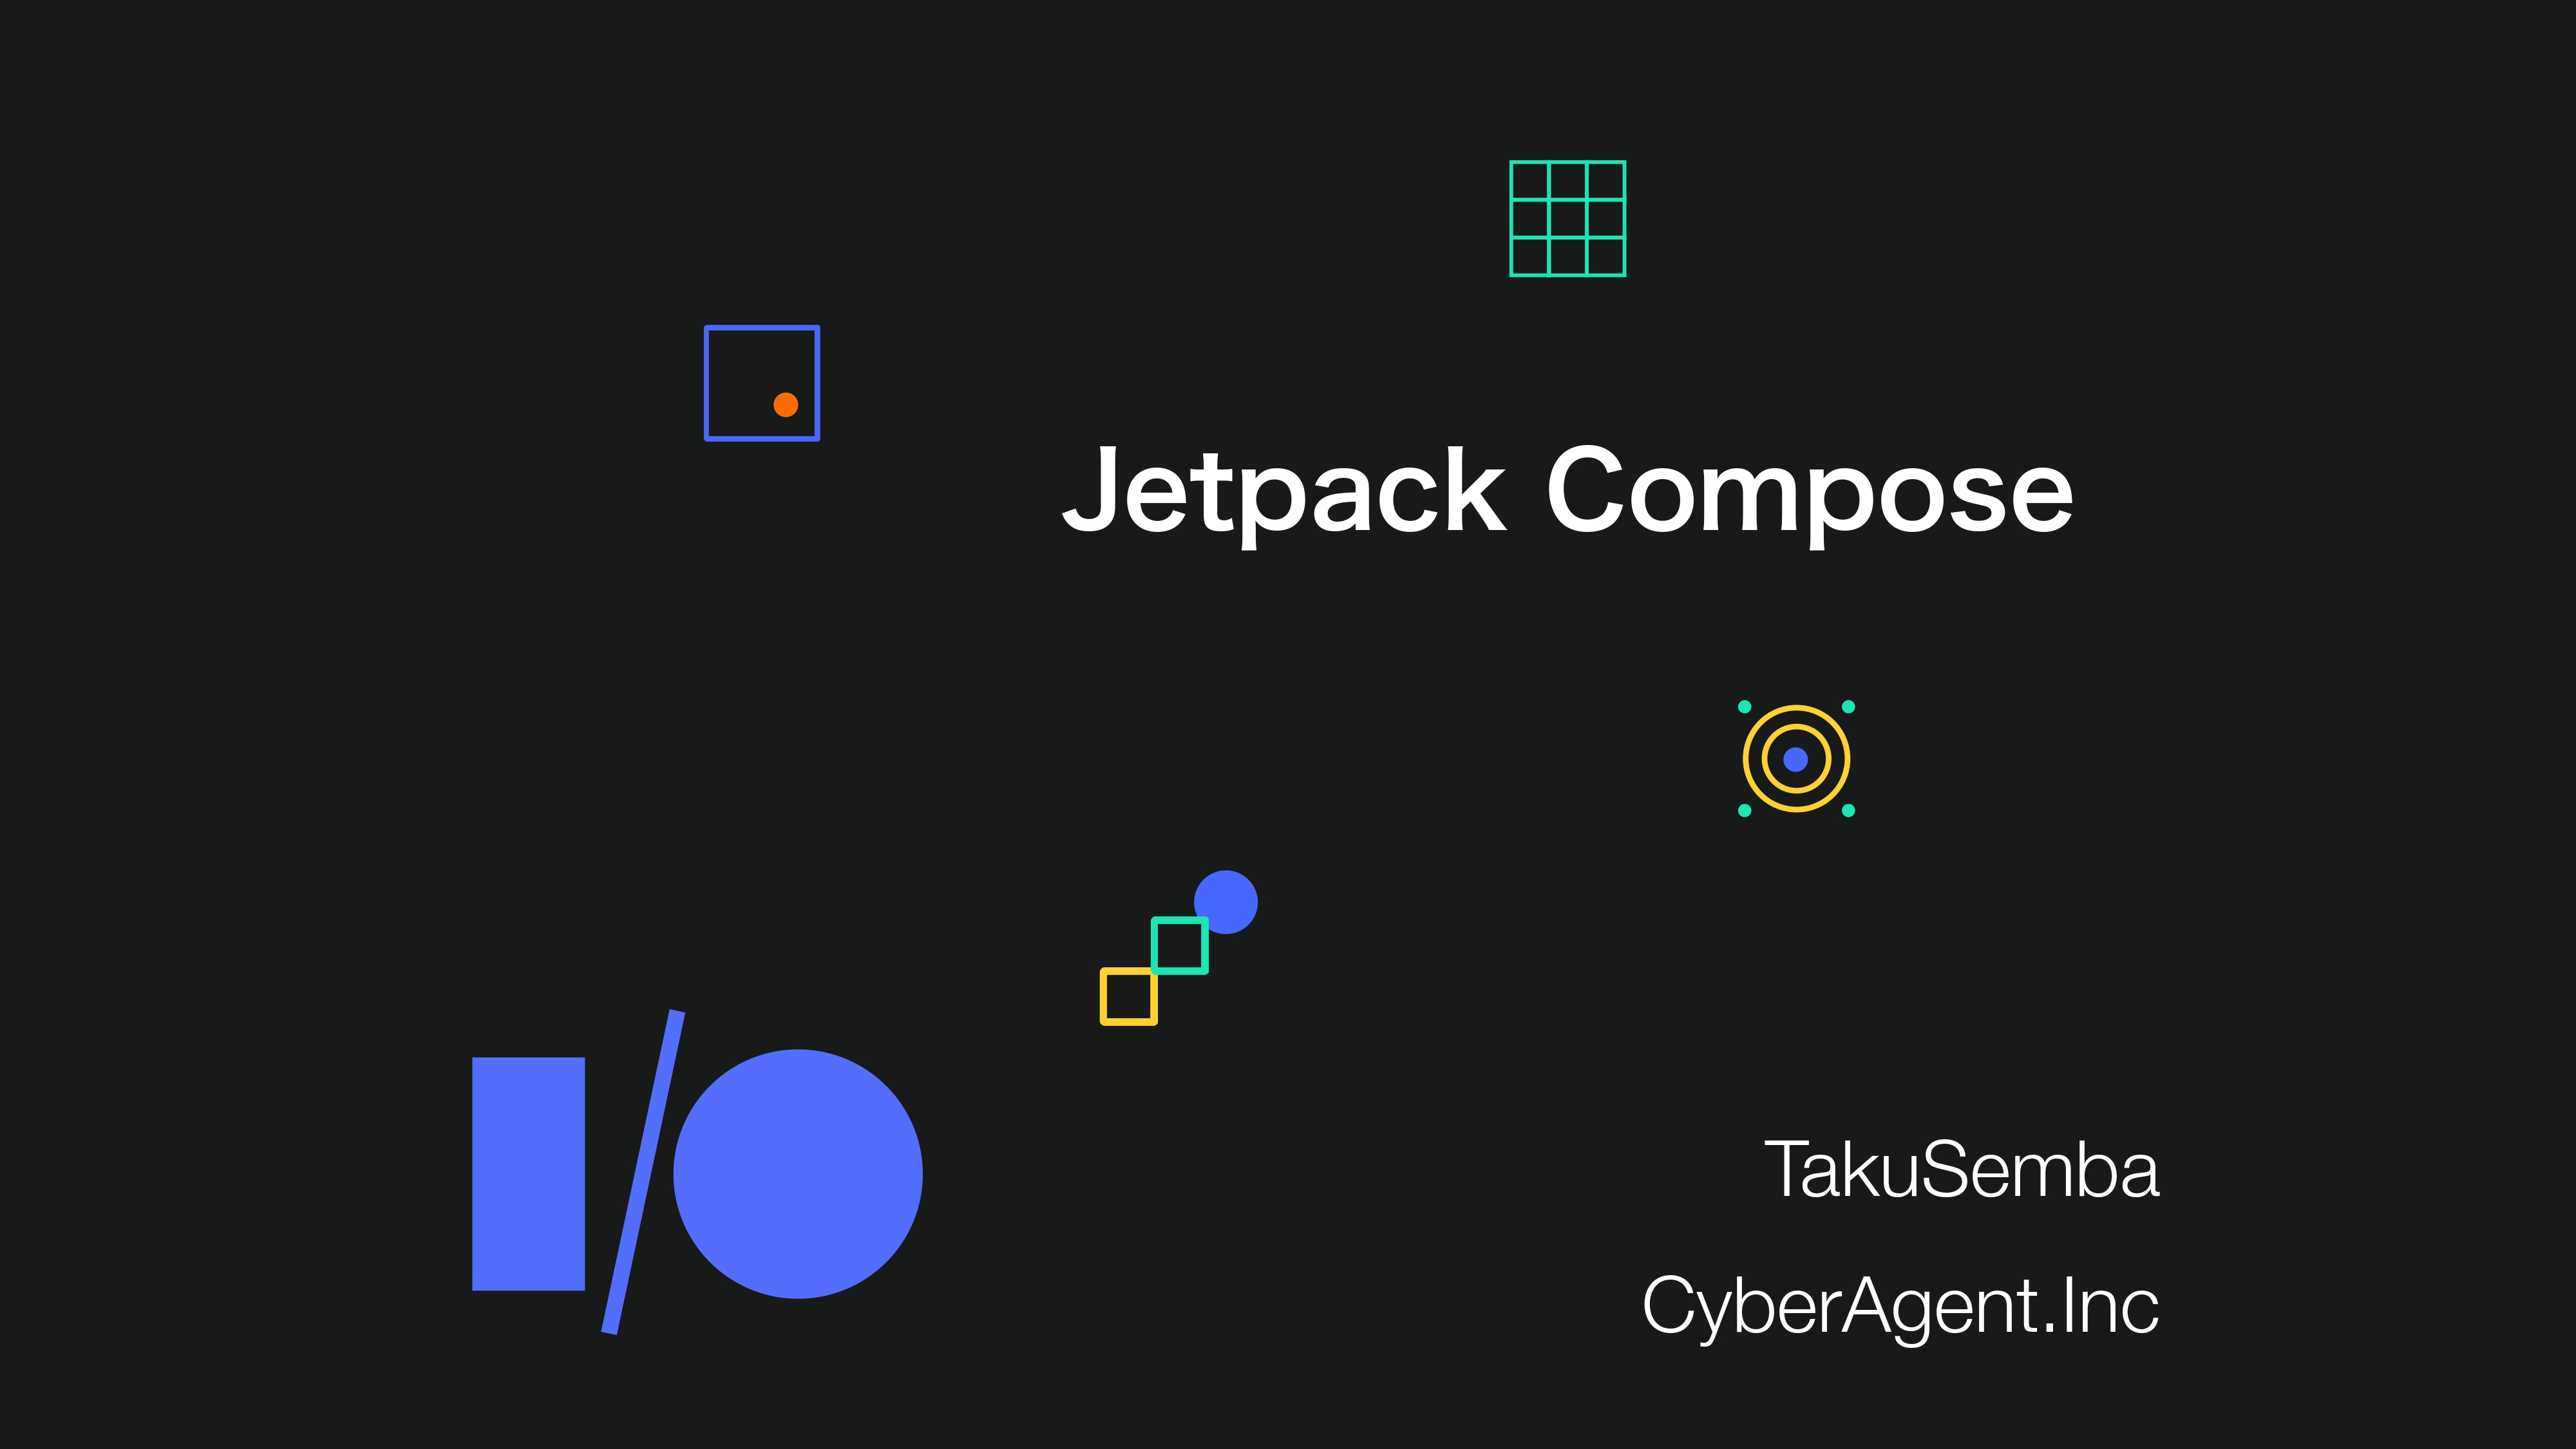 Jetpack Compose by TakuSemba